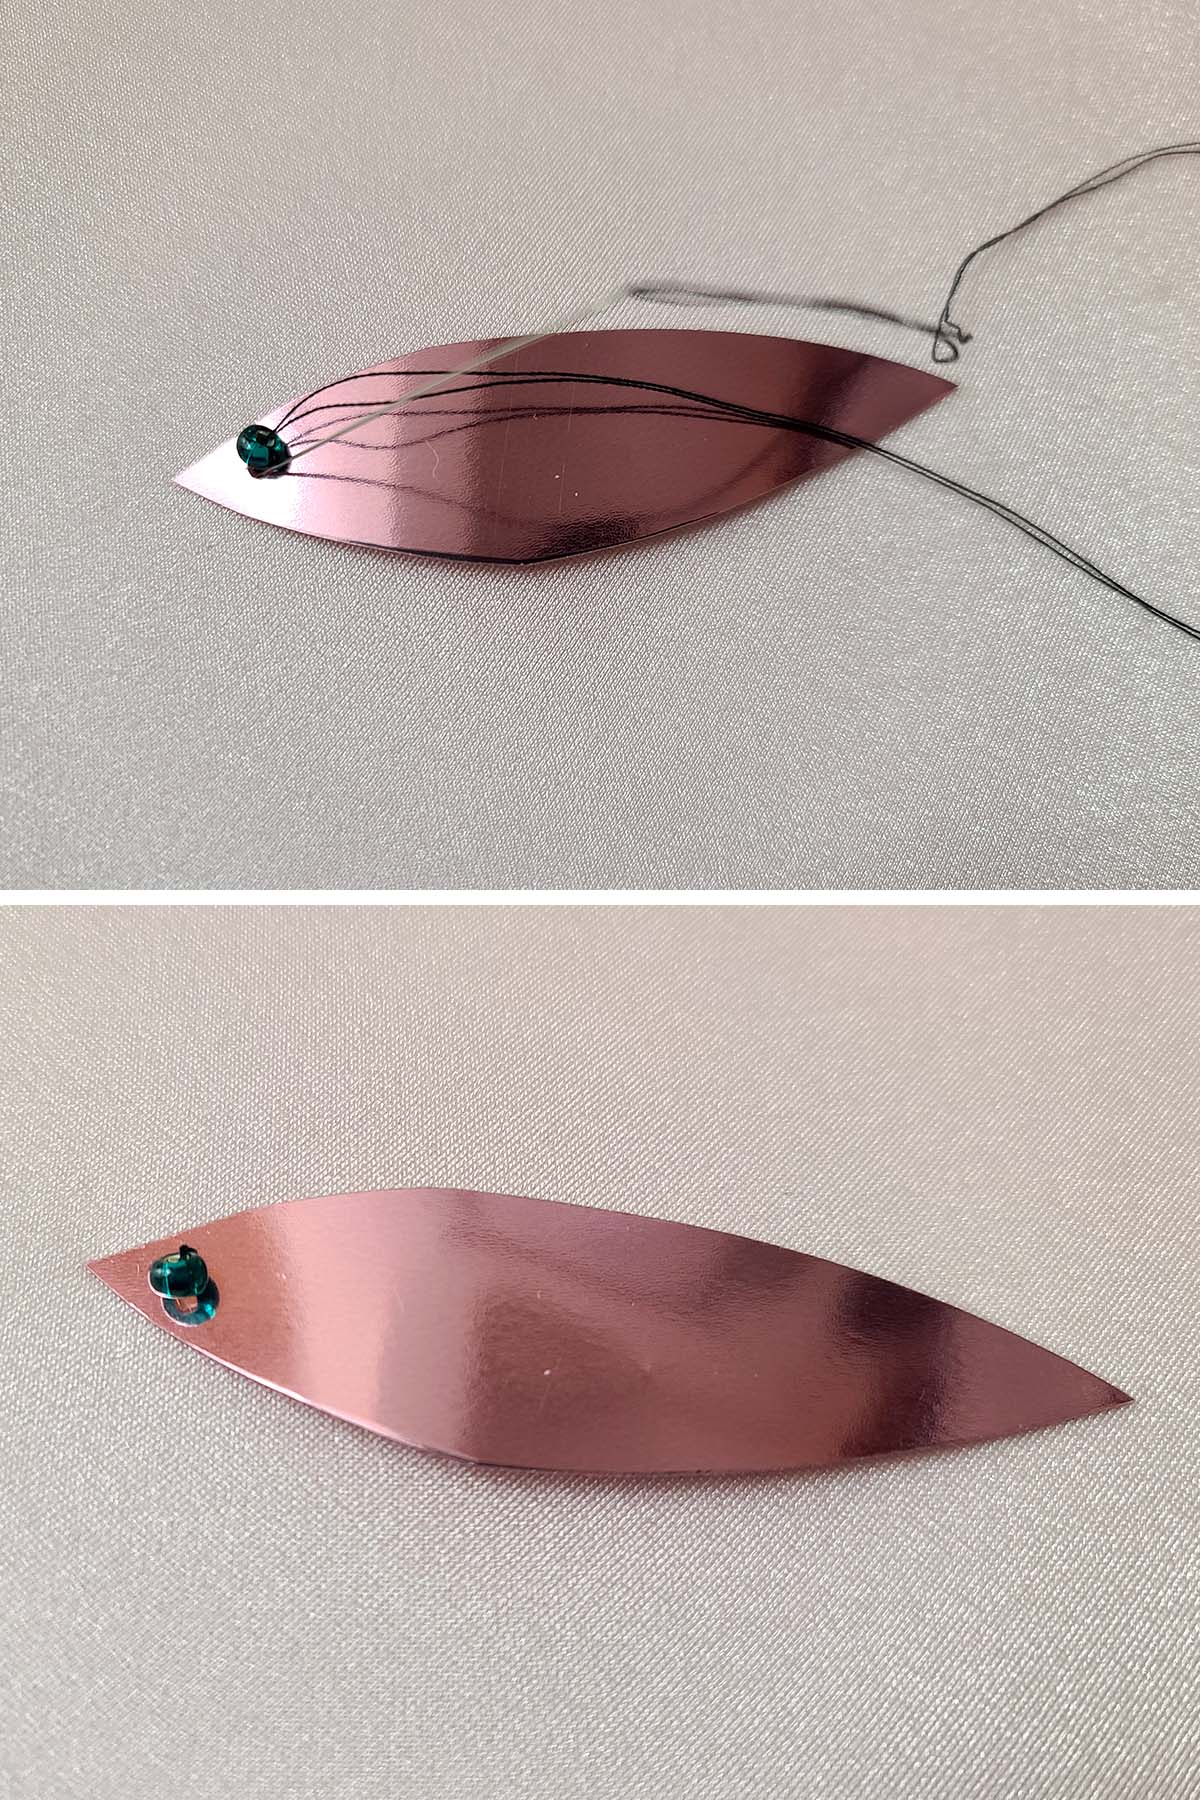 A two part compilation image shows a long leaf shaped pink spangle being sewn to a piece of stretched pink spandex, with a green rocaille bead.